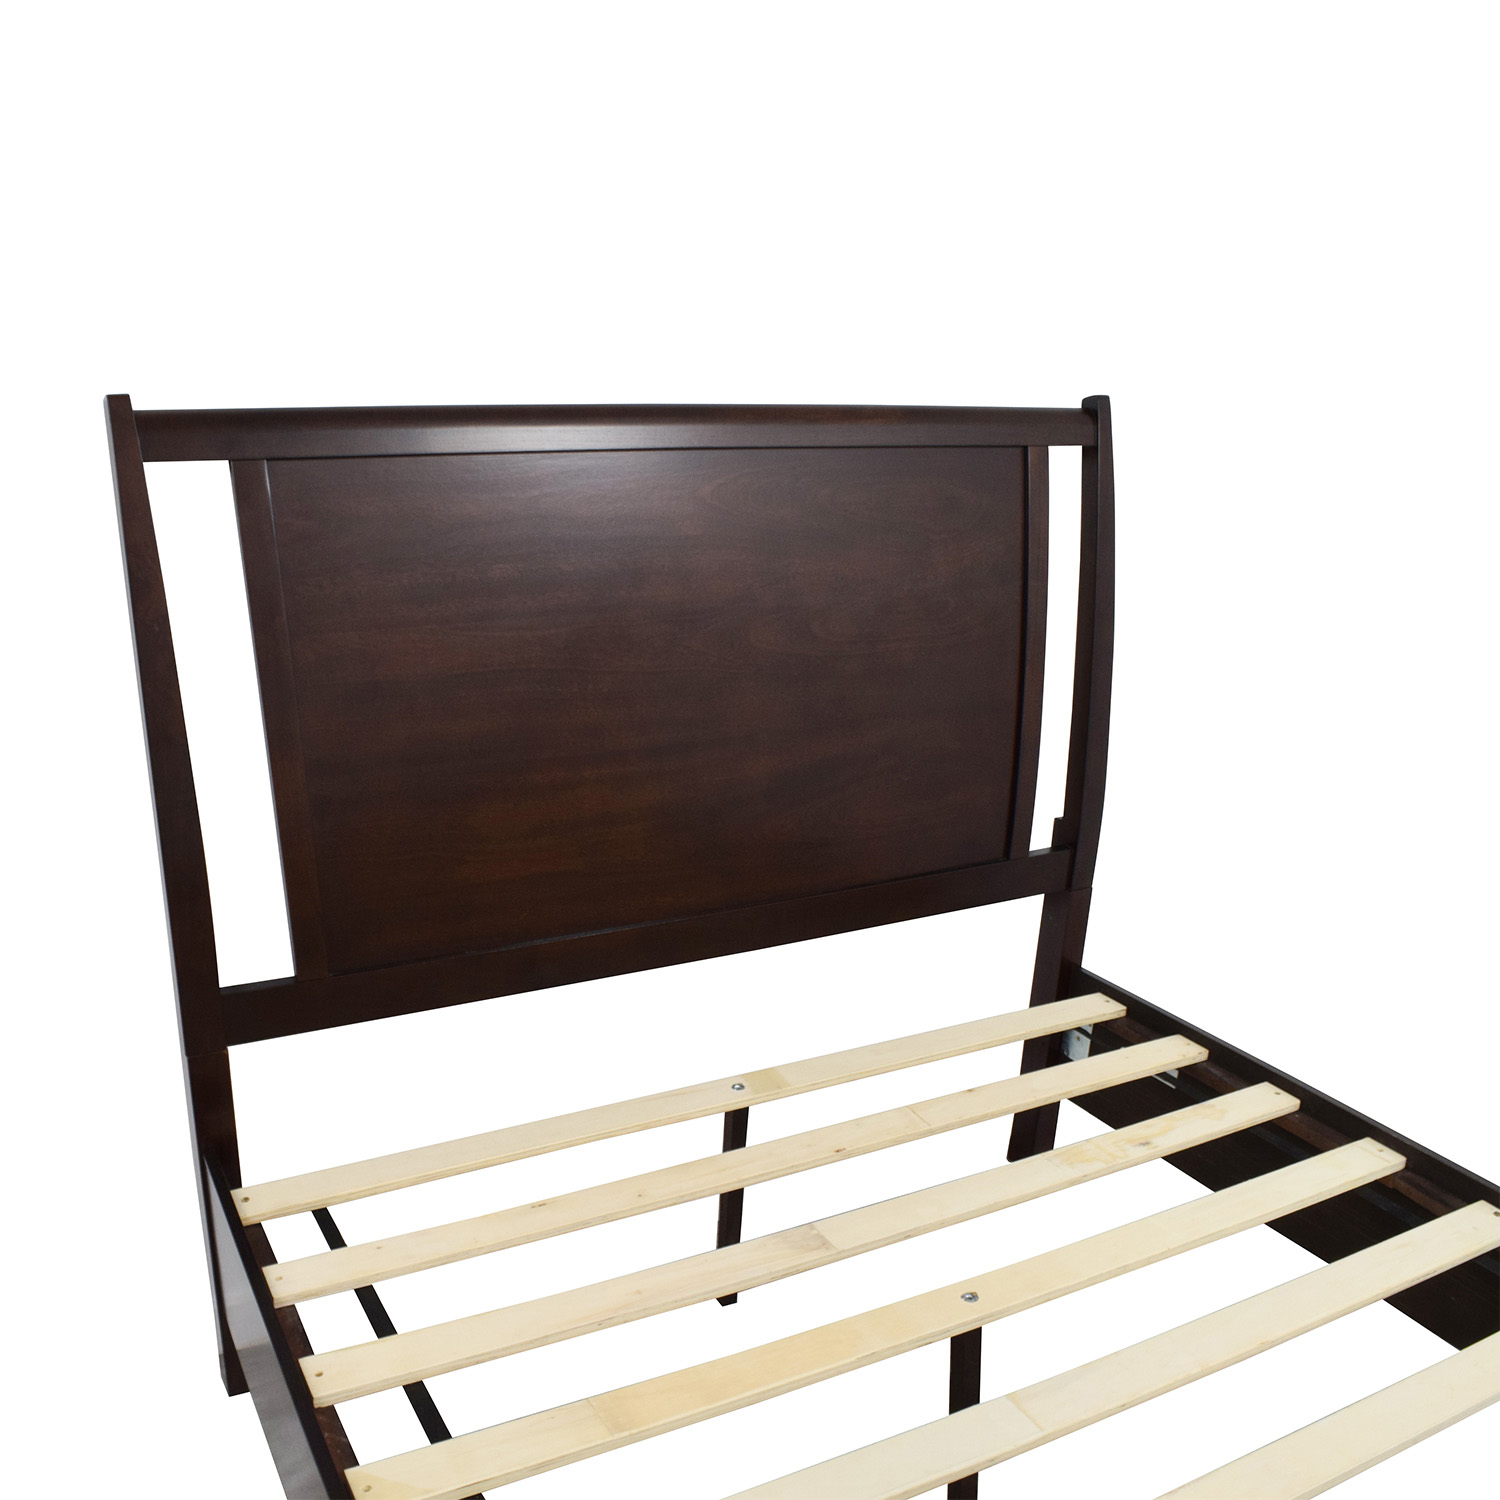 55 off bob 39 s furniture bob 39 s furniture wooden queen size storage bed beds Home furniture queen size bed